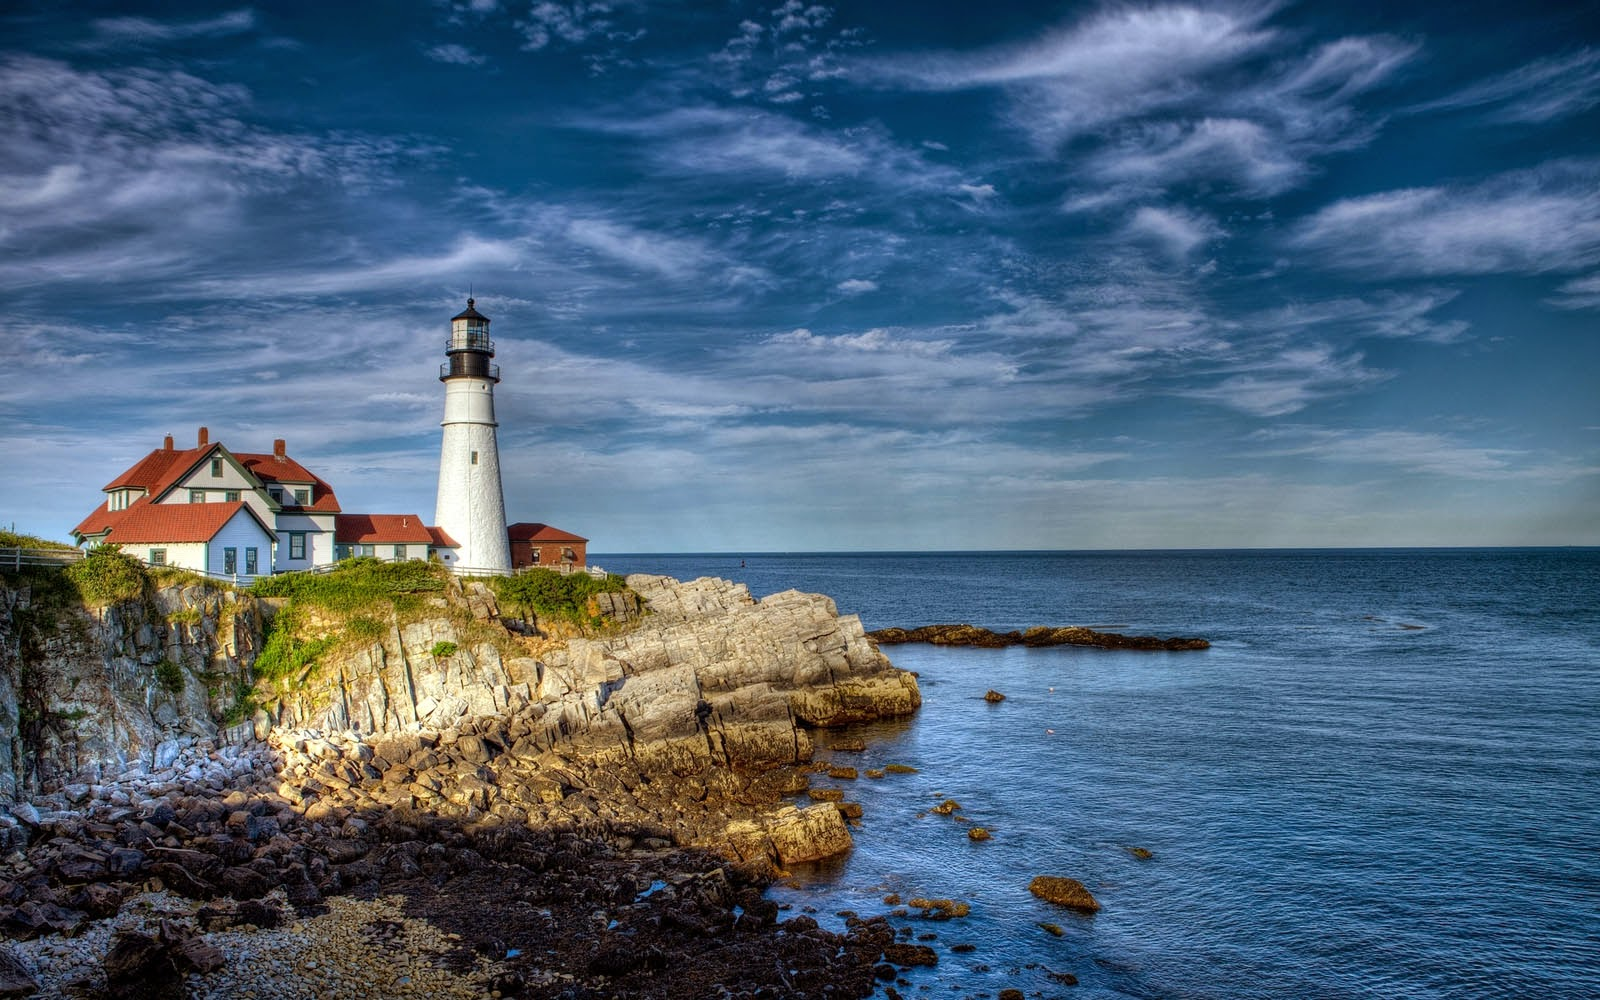 wallpapers: Lighthouse Wallpapers